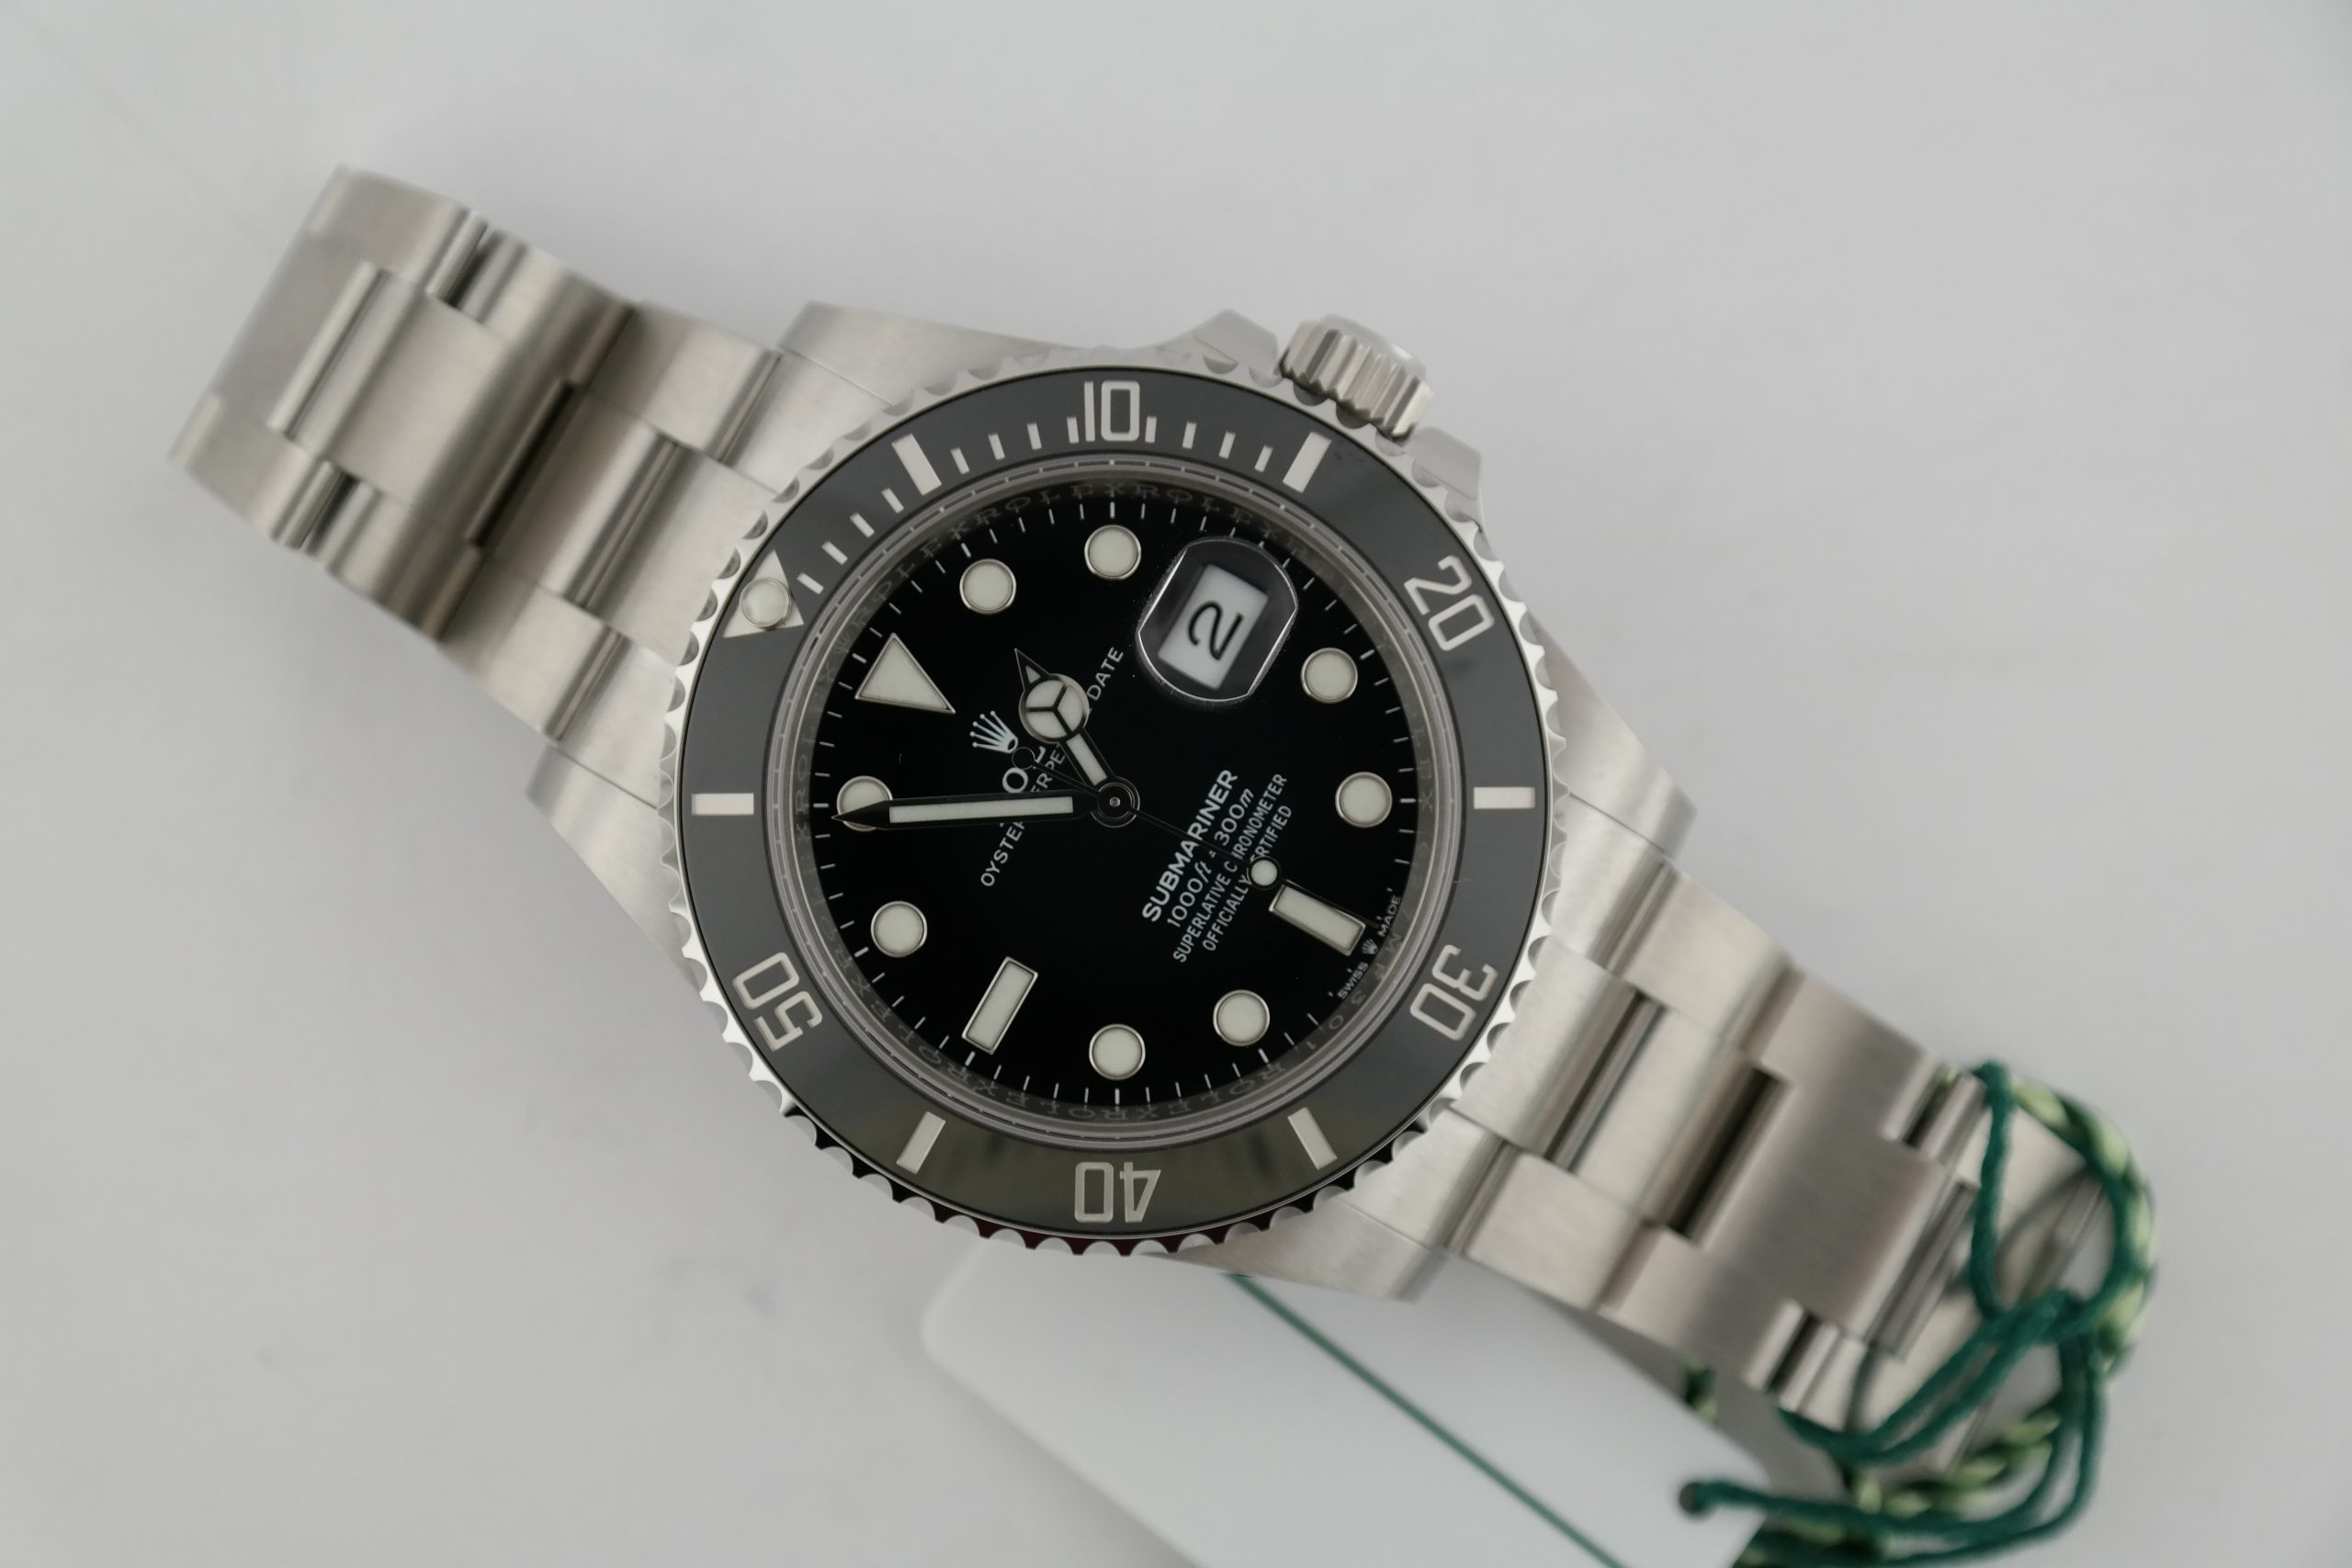 Rolex Submariner 126610LN 41mm Stainless Steel Black Ceramic Dial & Bezel 2020